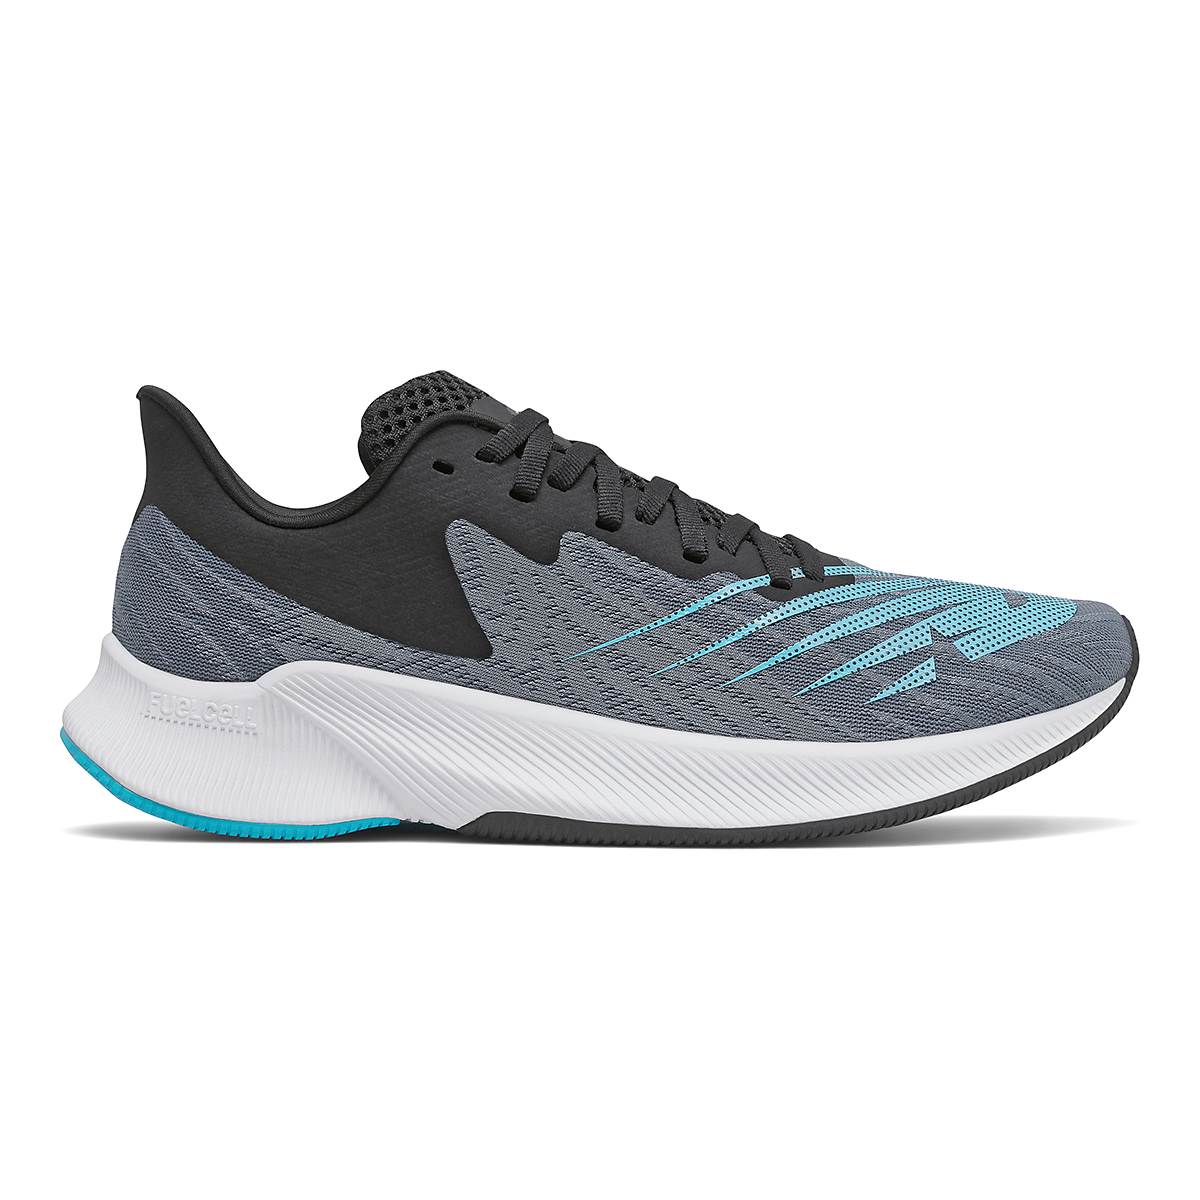 Men's New Balance Fuelcell Prism Running Shoe - Color: Ocean Grey/Virtual Sky - Size: 7 - Width: Wide, Ocean Grey/Virtual Sky, large, image 1